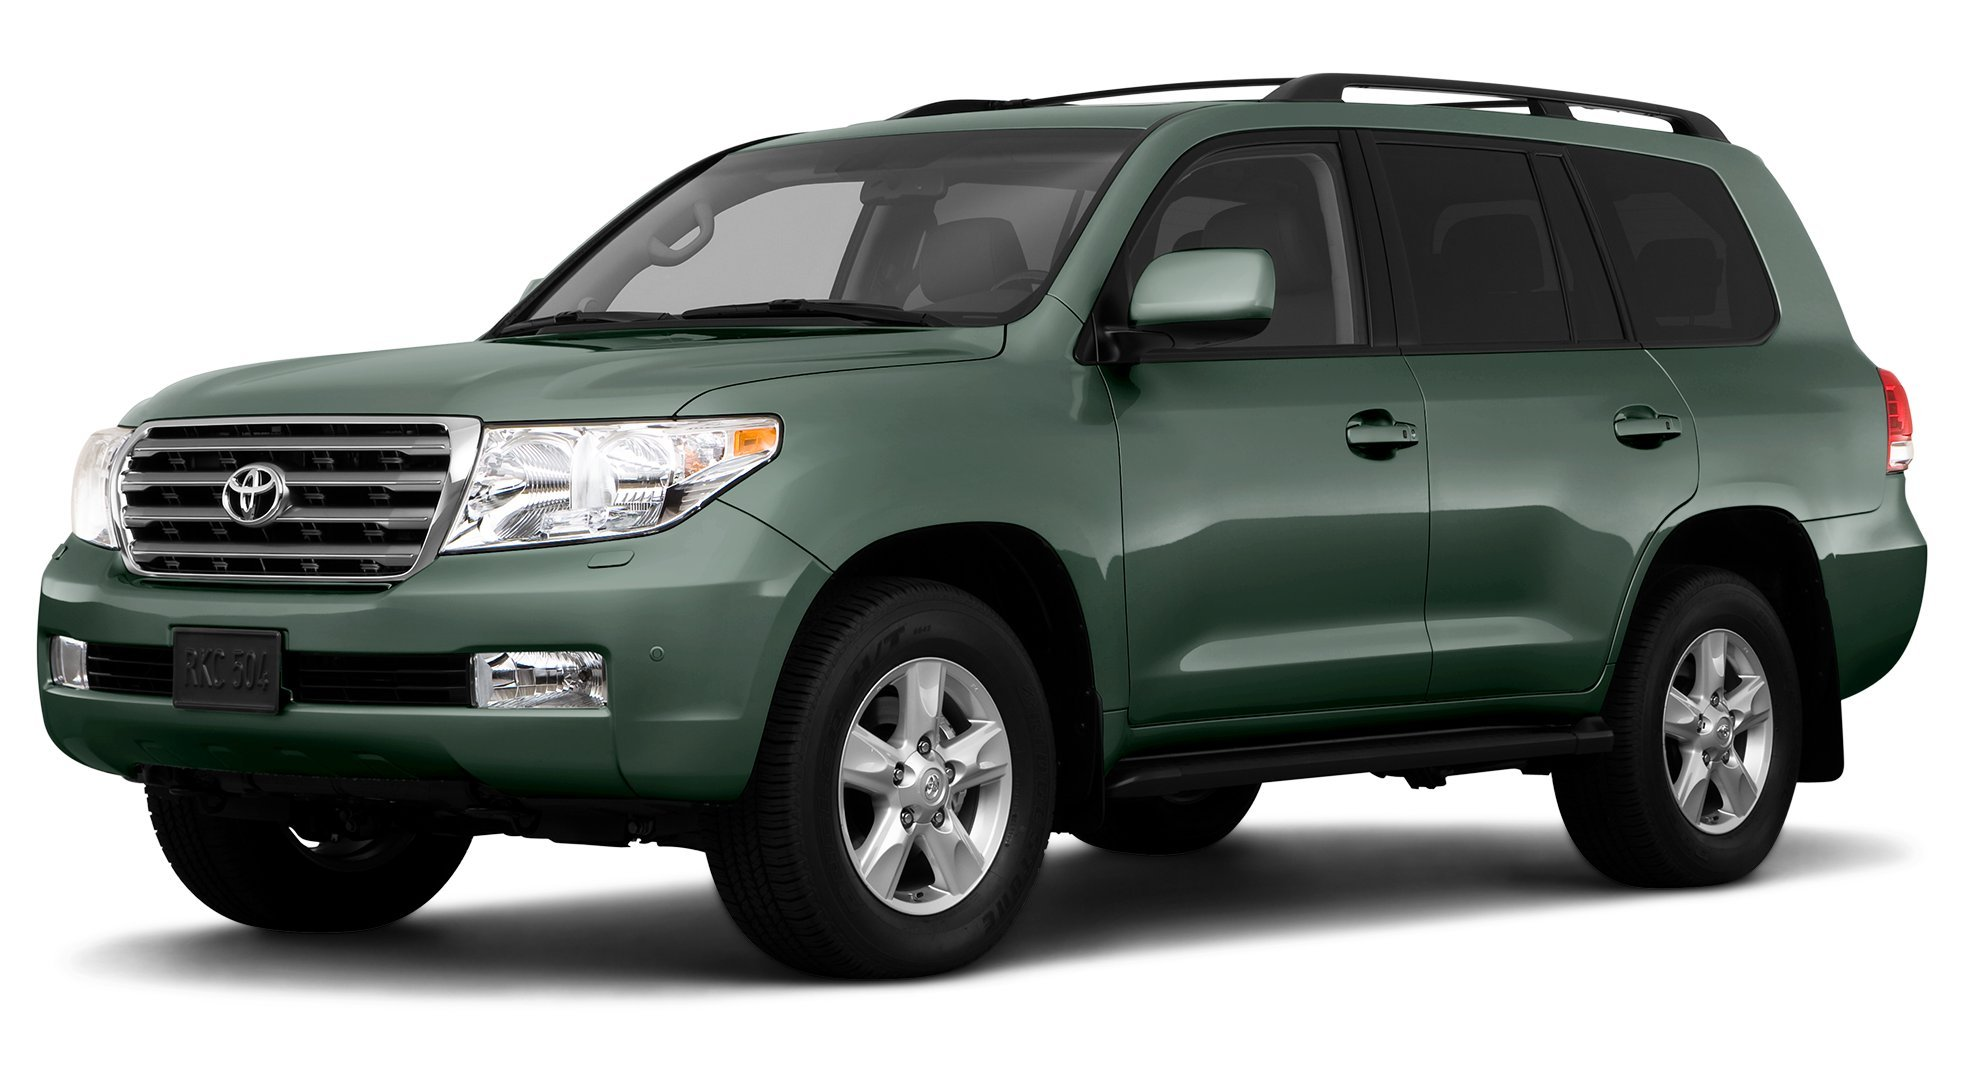 2010 toyota land cruiser reviews images and. Black Bedroom Furniture Sets. Home Design Ideas